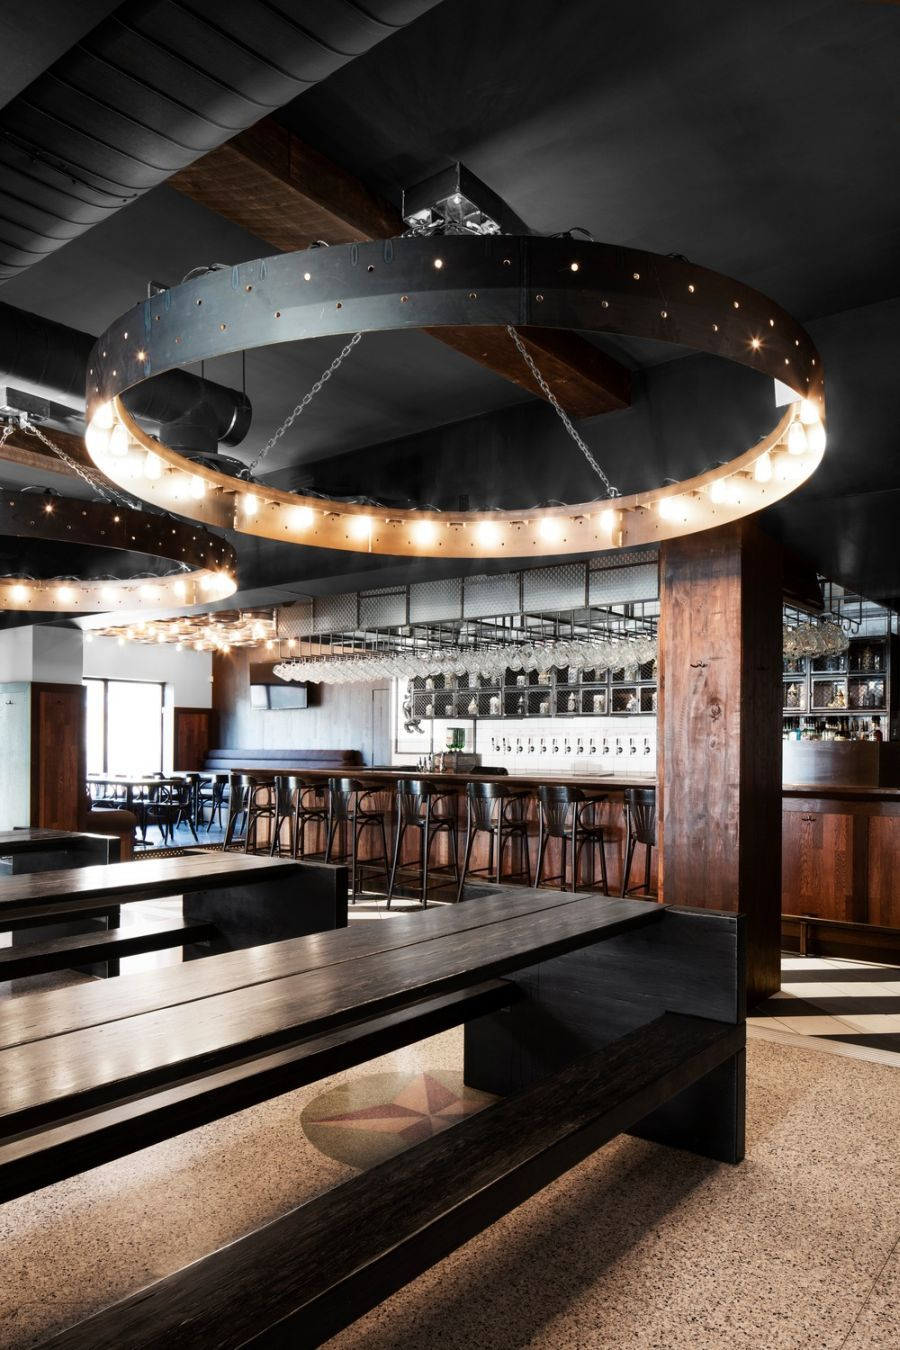 Beer Lovers Will Swoon Over This Industrial Bar Design in